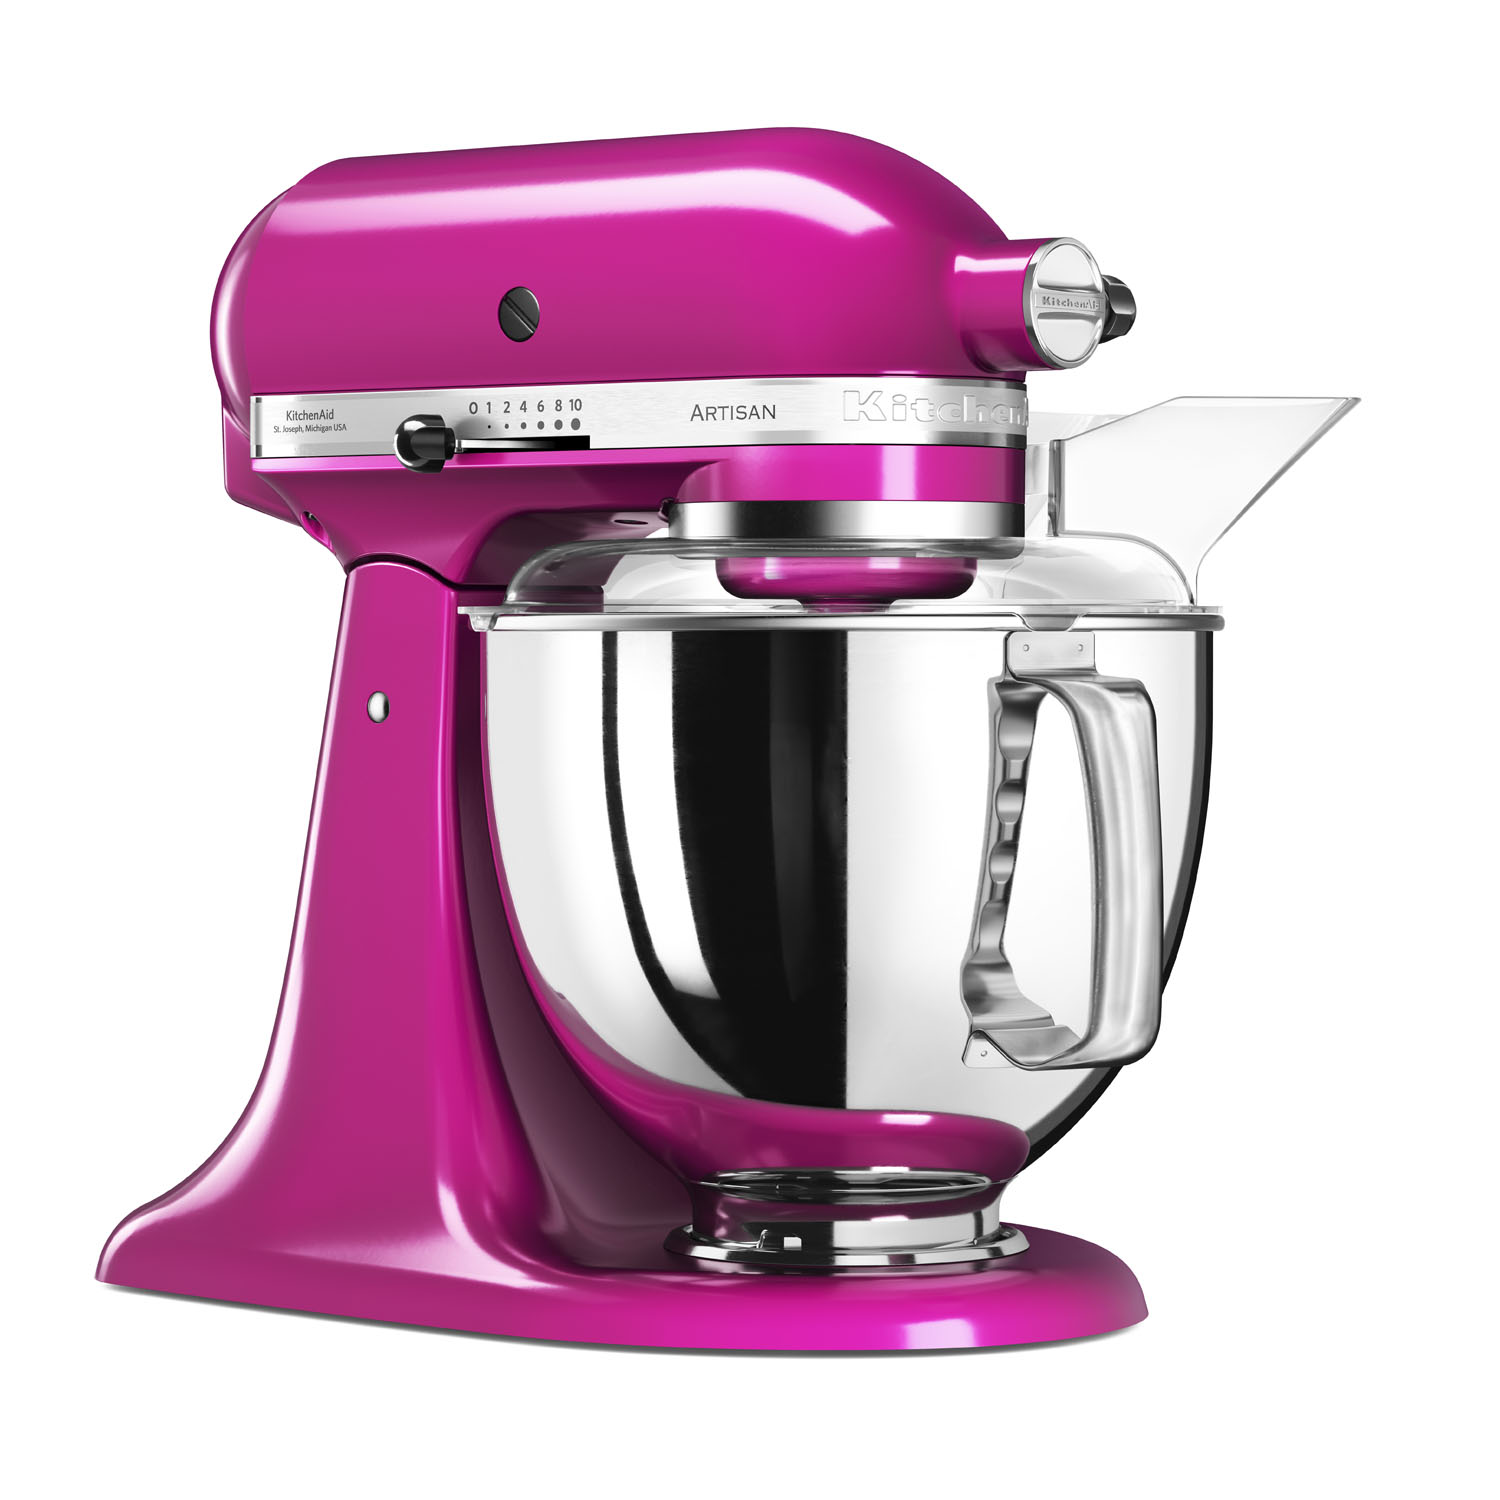 Kitchenaid Artisan 5ksm175psbri 4 8 L Stand Mixer Raspberry Ice